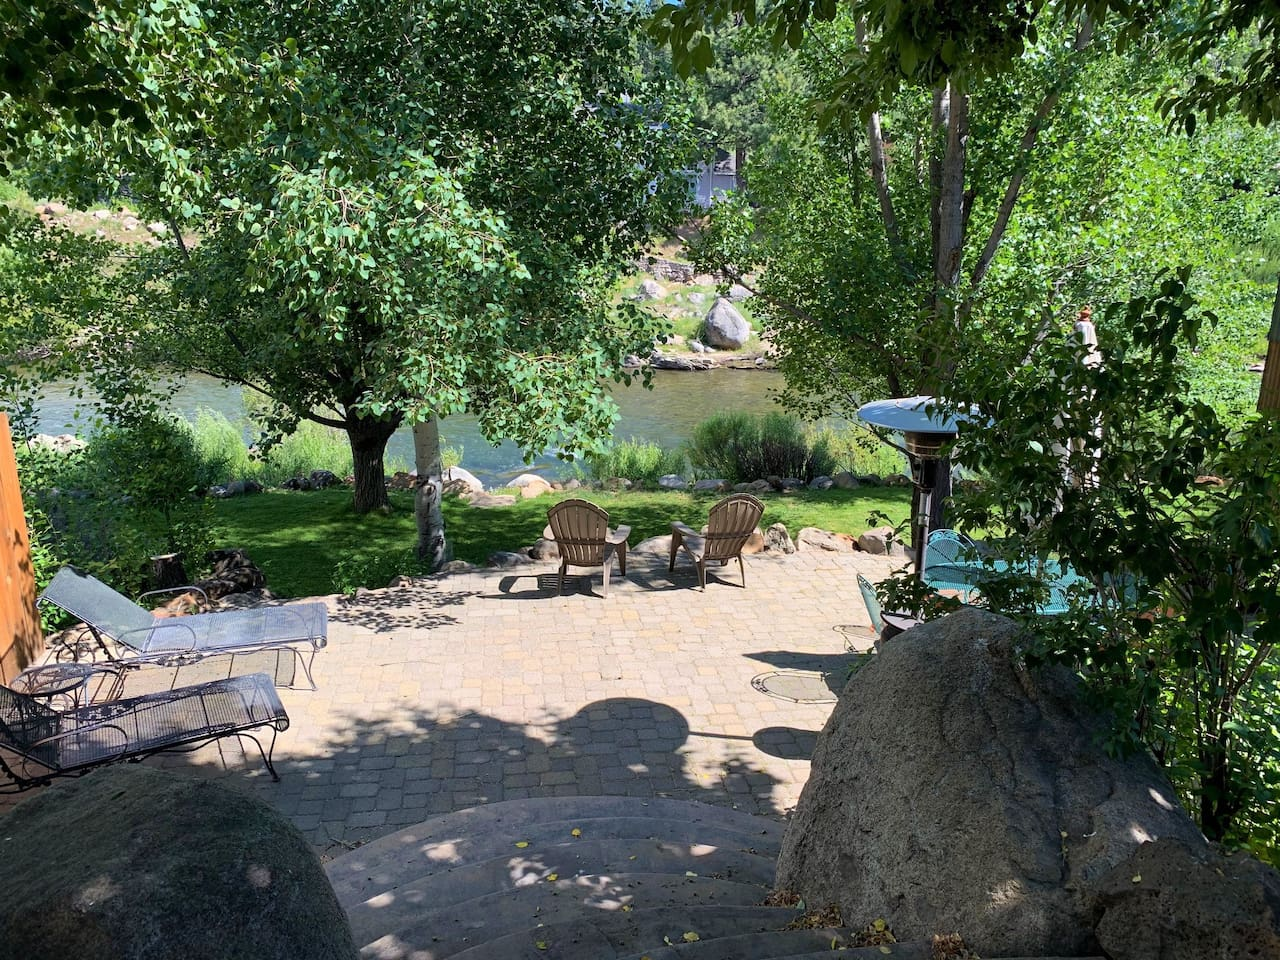 You could be sitting here!  Large backyard patio right outside your door and right on your private 80 feet along the Truckee River.  Walk to everything in downtown Truckee, yet feel away from it all when at home.